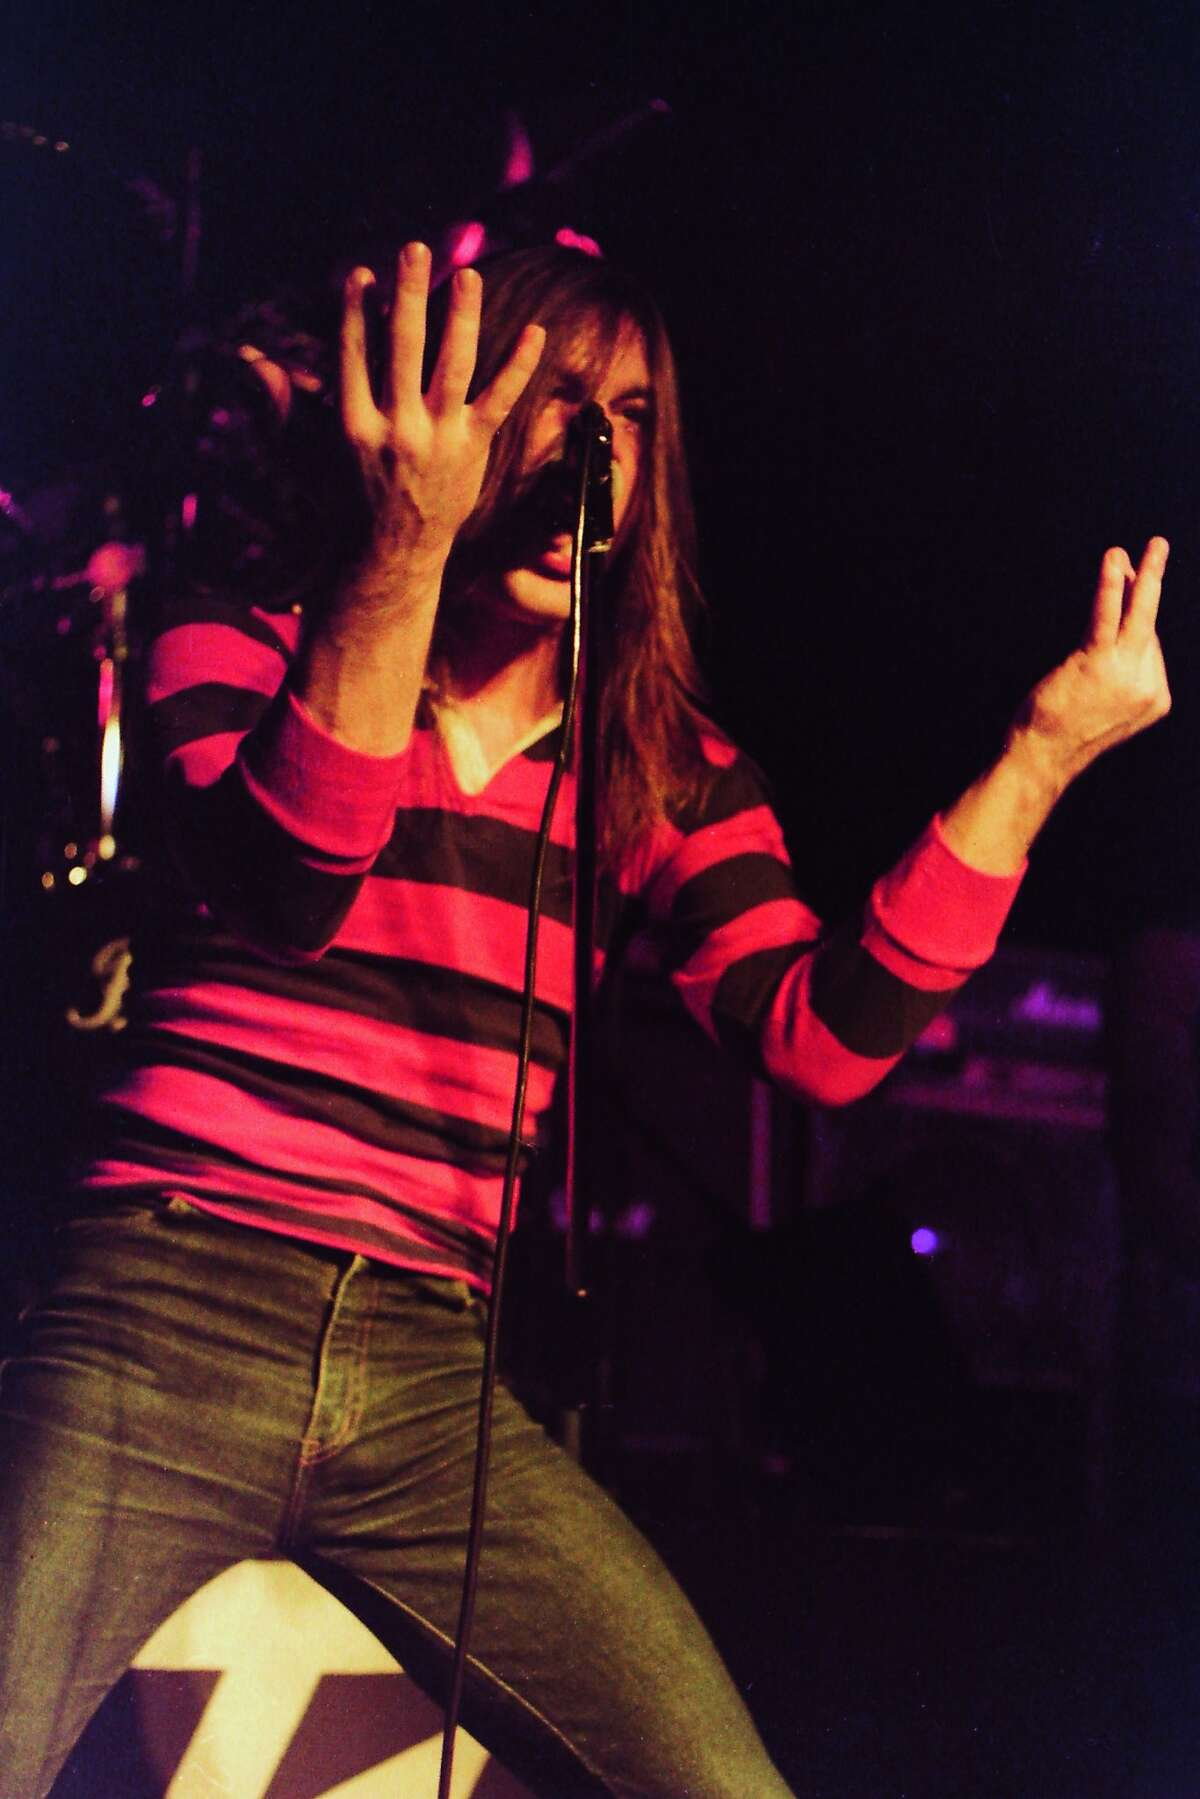 Long hair, stripes and jeans -- one uniform for heavy metal singers - as seen on Bruce Dickinson, who sang for Shots, Speed and Samson before joining Iron Maiden in the early 1980s. He's had a three-decade career with the band that included a short separation for several solo albums.